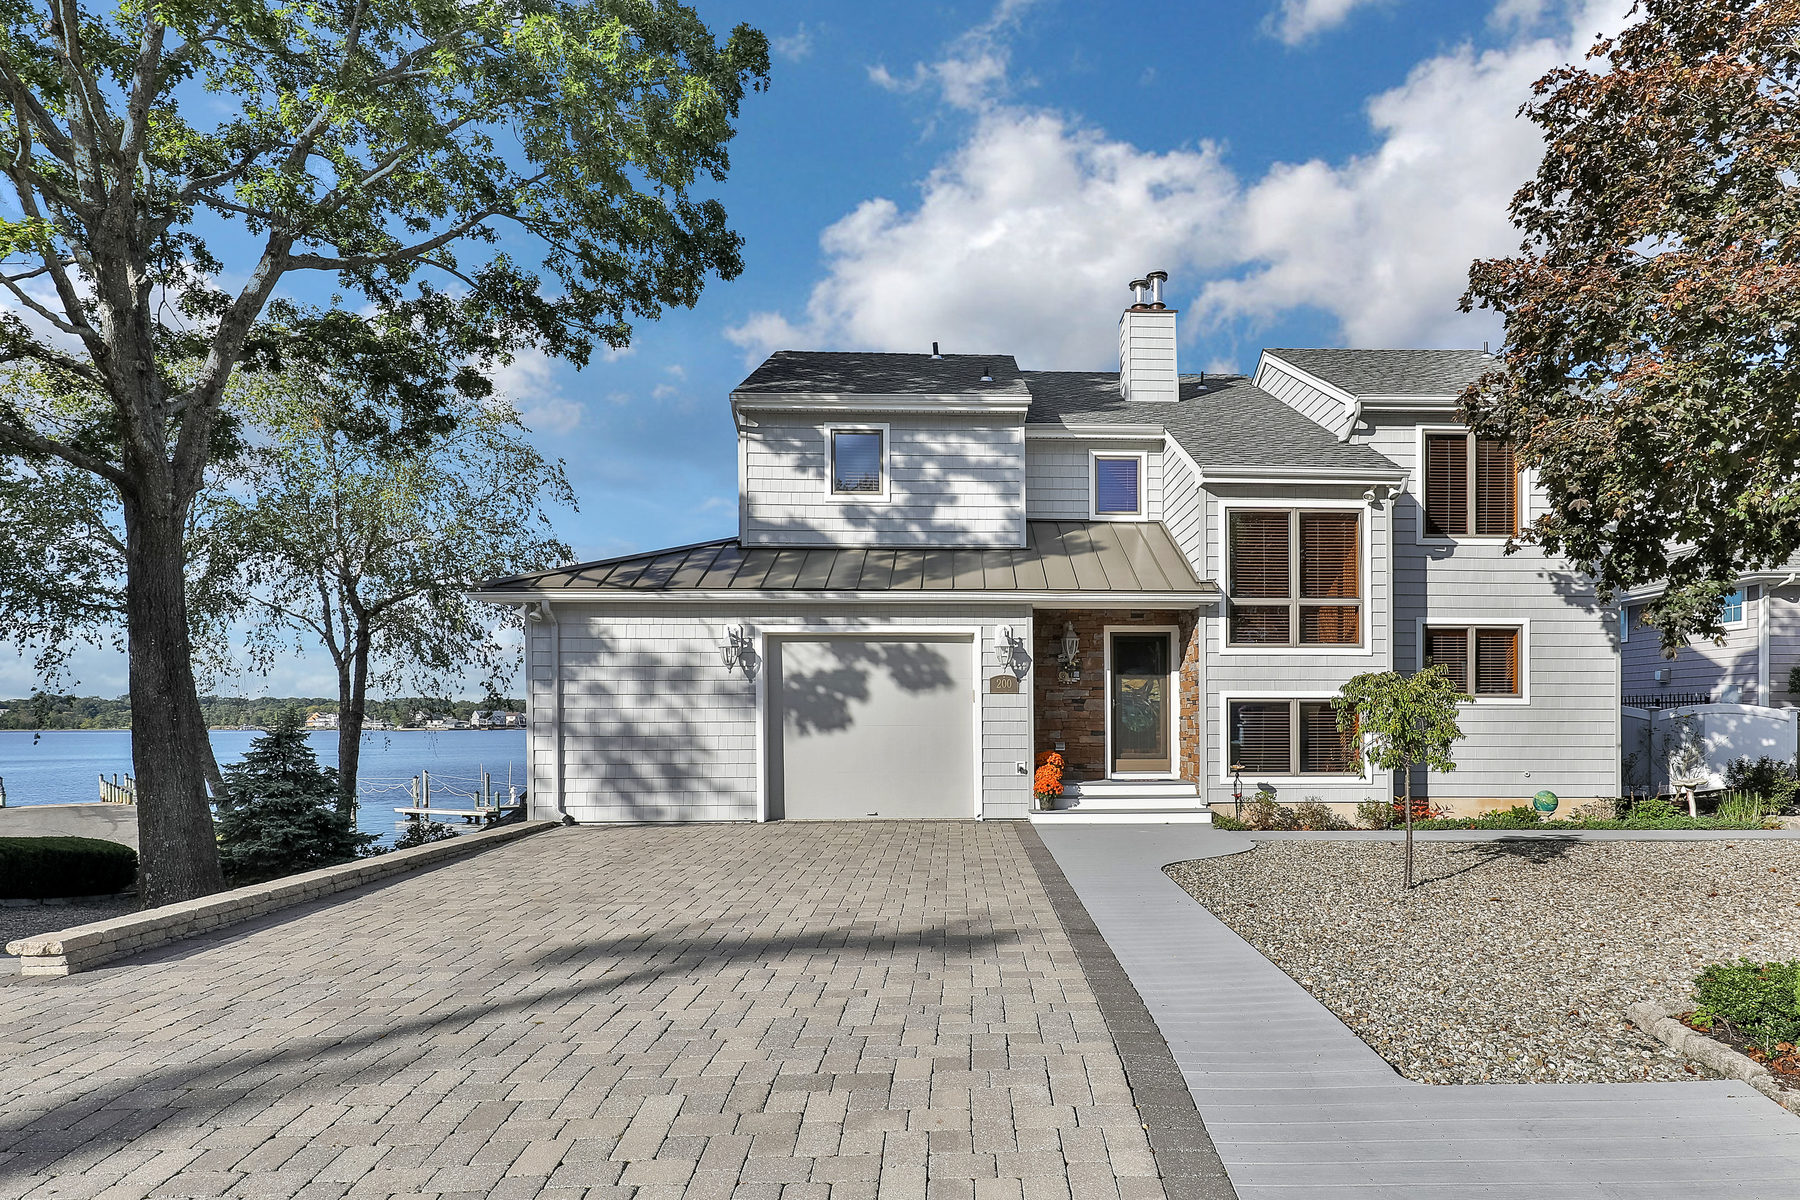 Single Family Home for Sale at One Of A Kind Riverfront Home 200 Prospect Avenue Pine Beach, 08741 United States